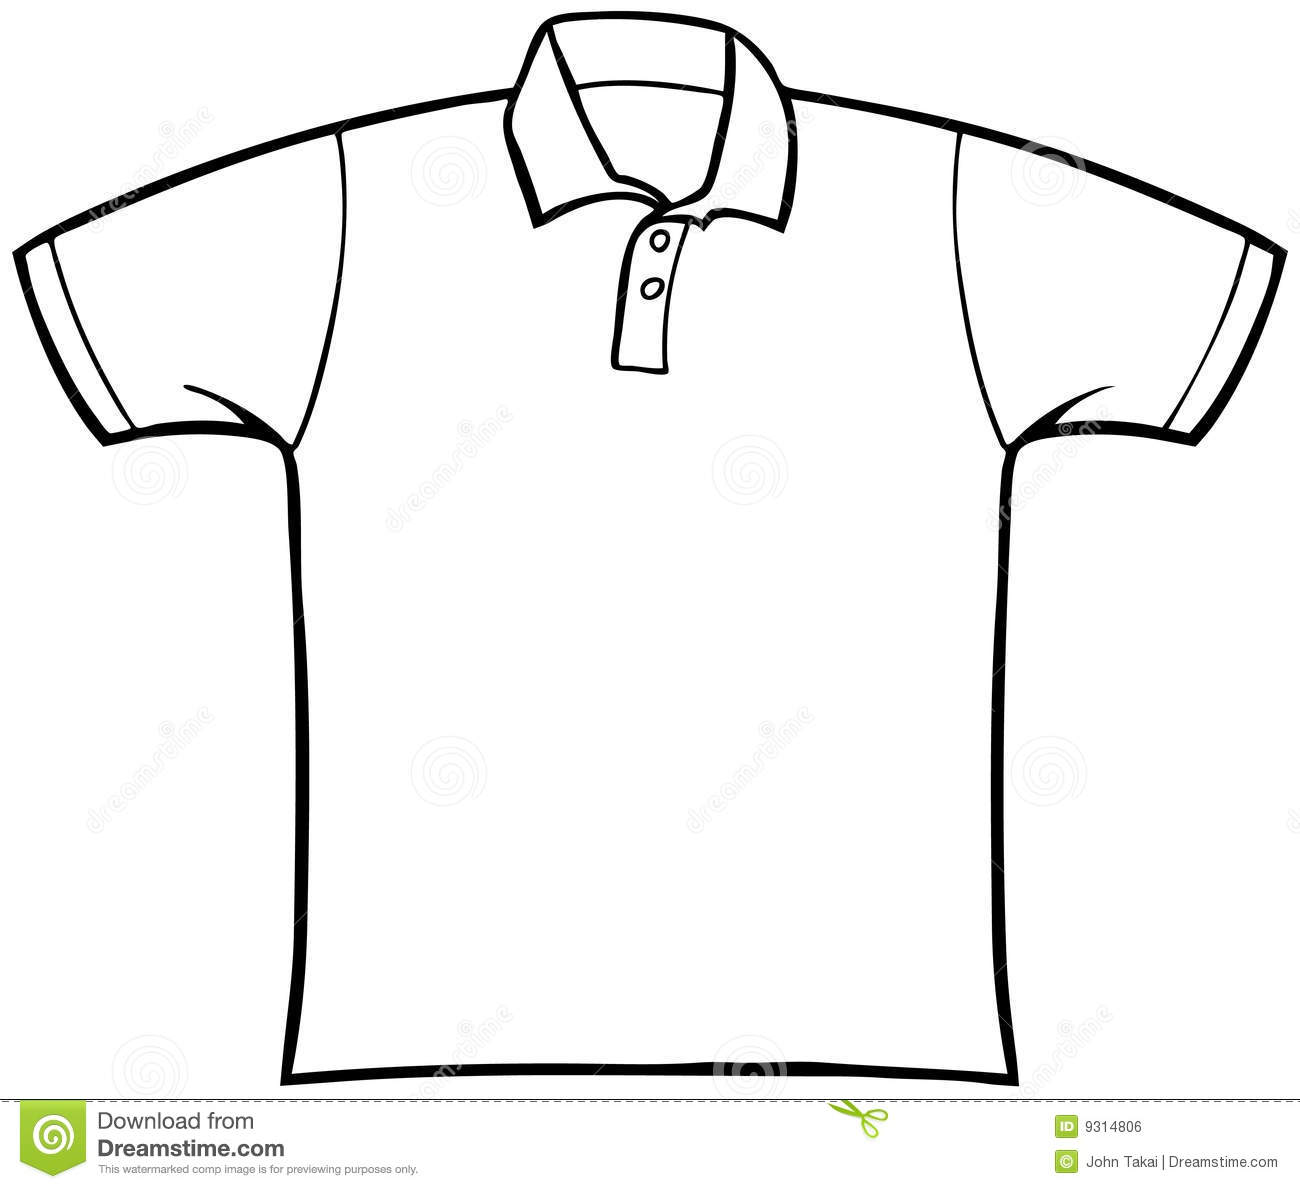 shirt and pants clipart black and white 4 clipart station rh clipartstation com Blank Shirts and Pants Clip Art Breakfast Clip Art